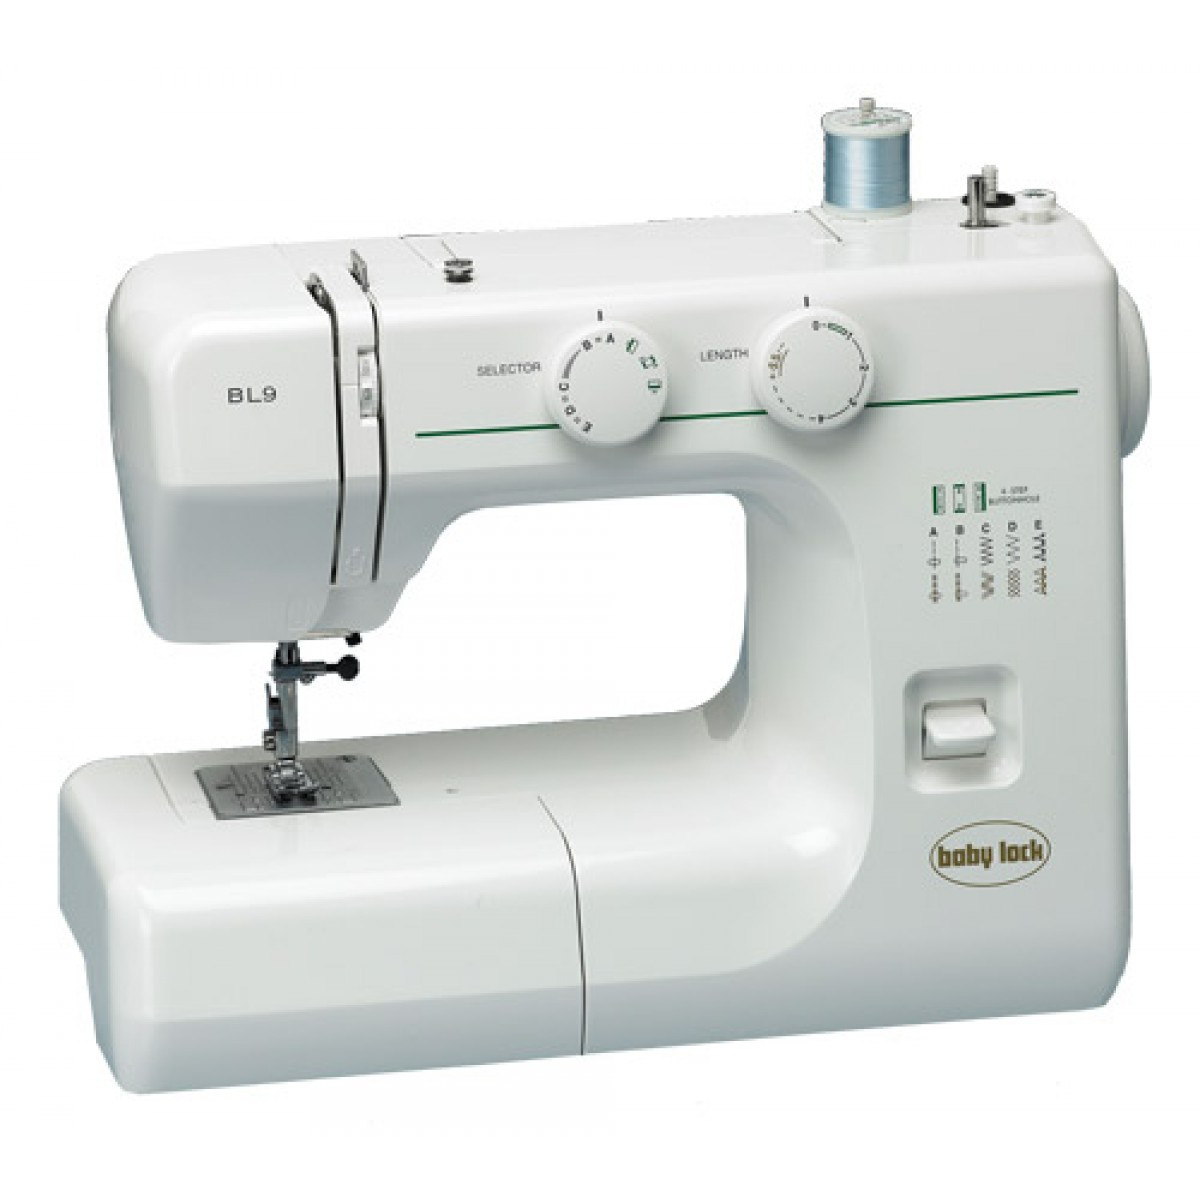 Embroidery Machine Luxury Baby Lock Bl9 Sewing Machine Of Innovative 43 Pictures Embroidery Machine